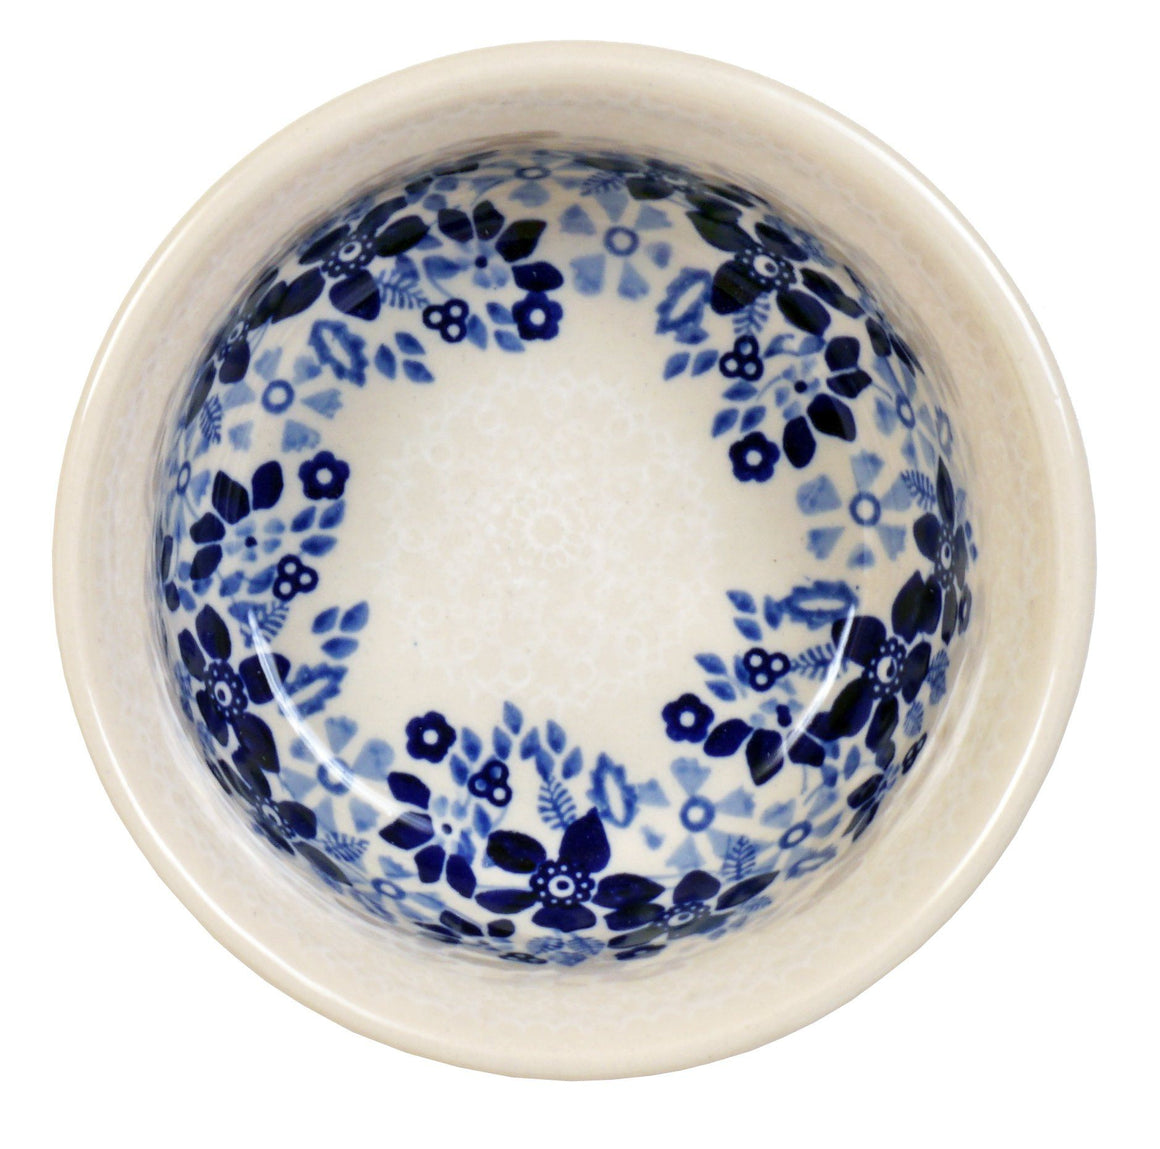 "5.5"" Bowl (Duet Blue Wreath)"